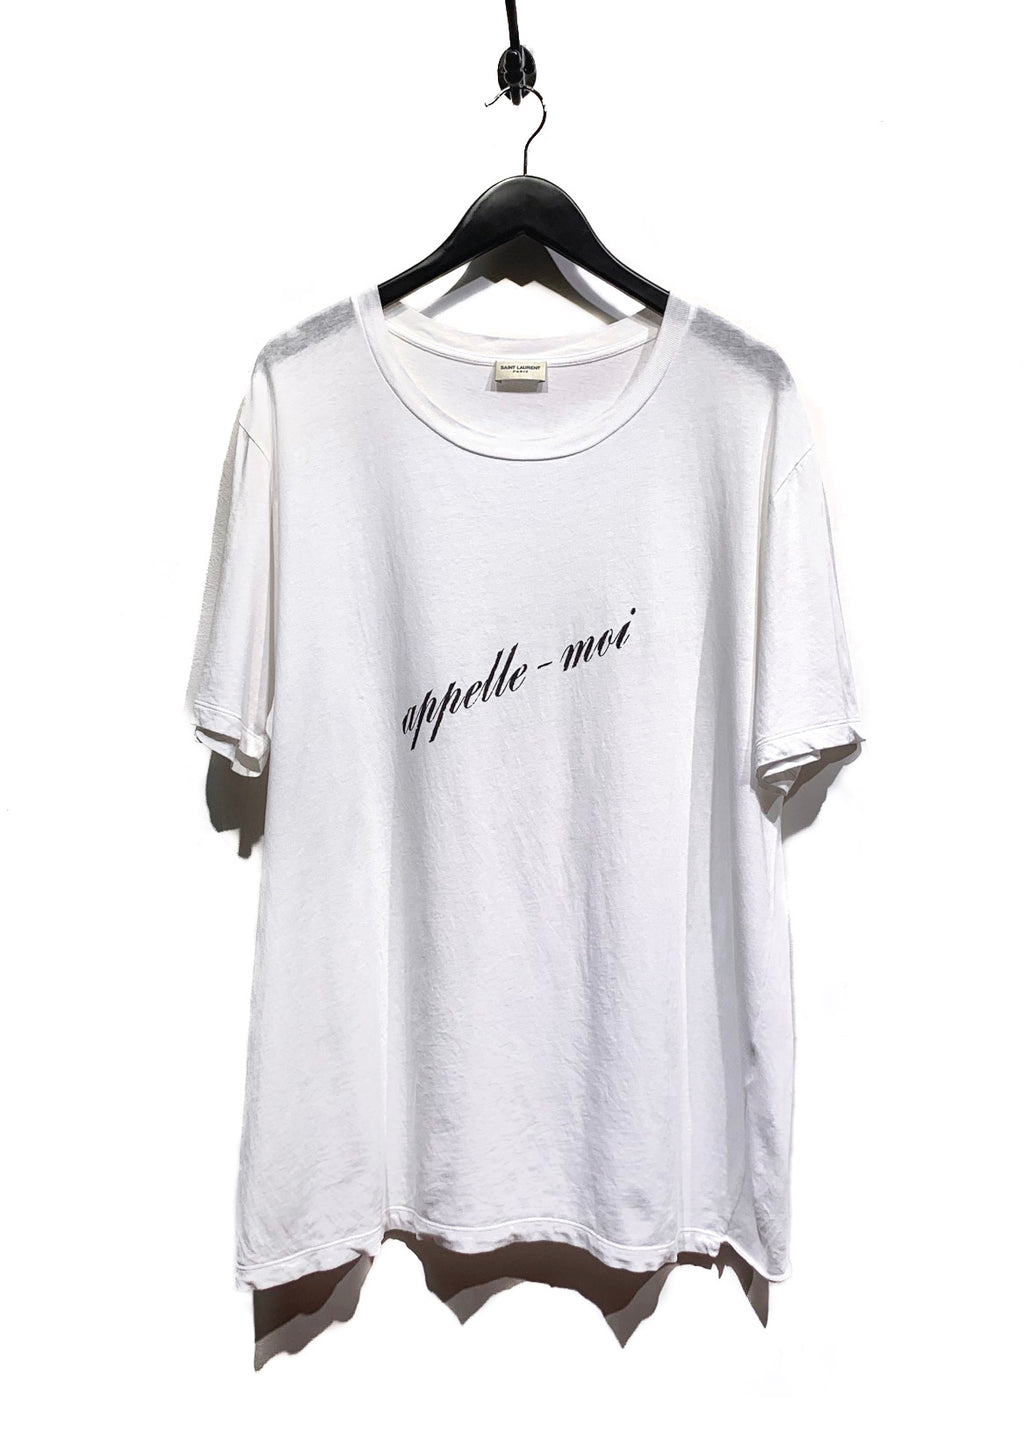 T-shirt blanc graphique '' Appelle-moi '' de Saint Laurent